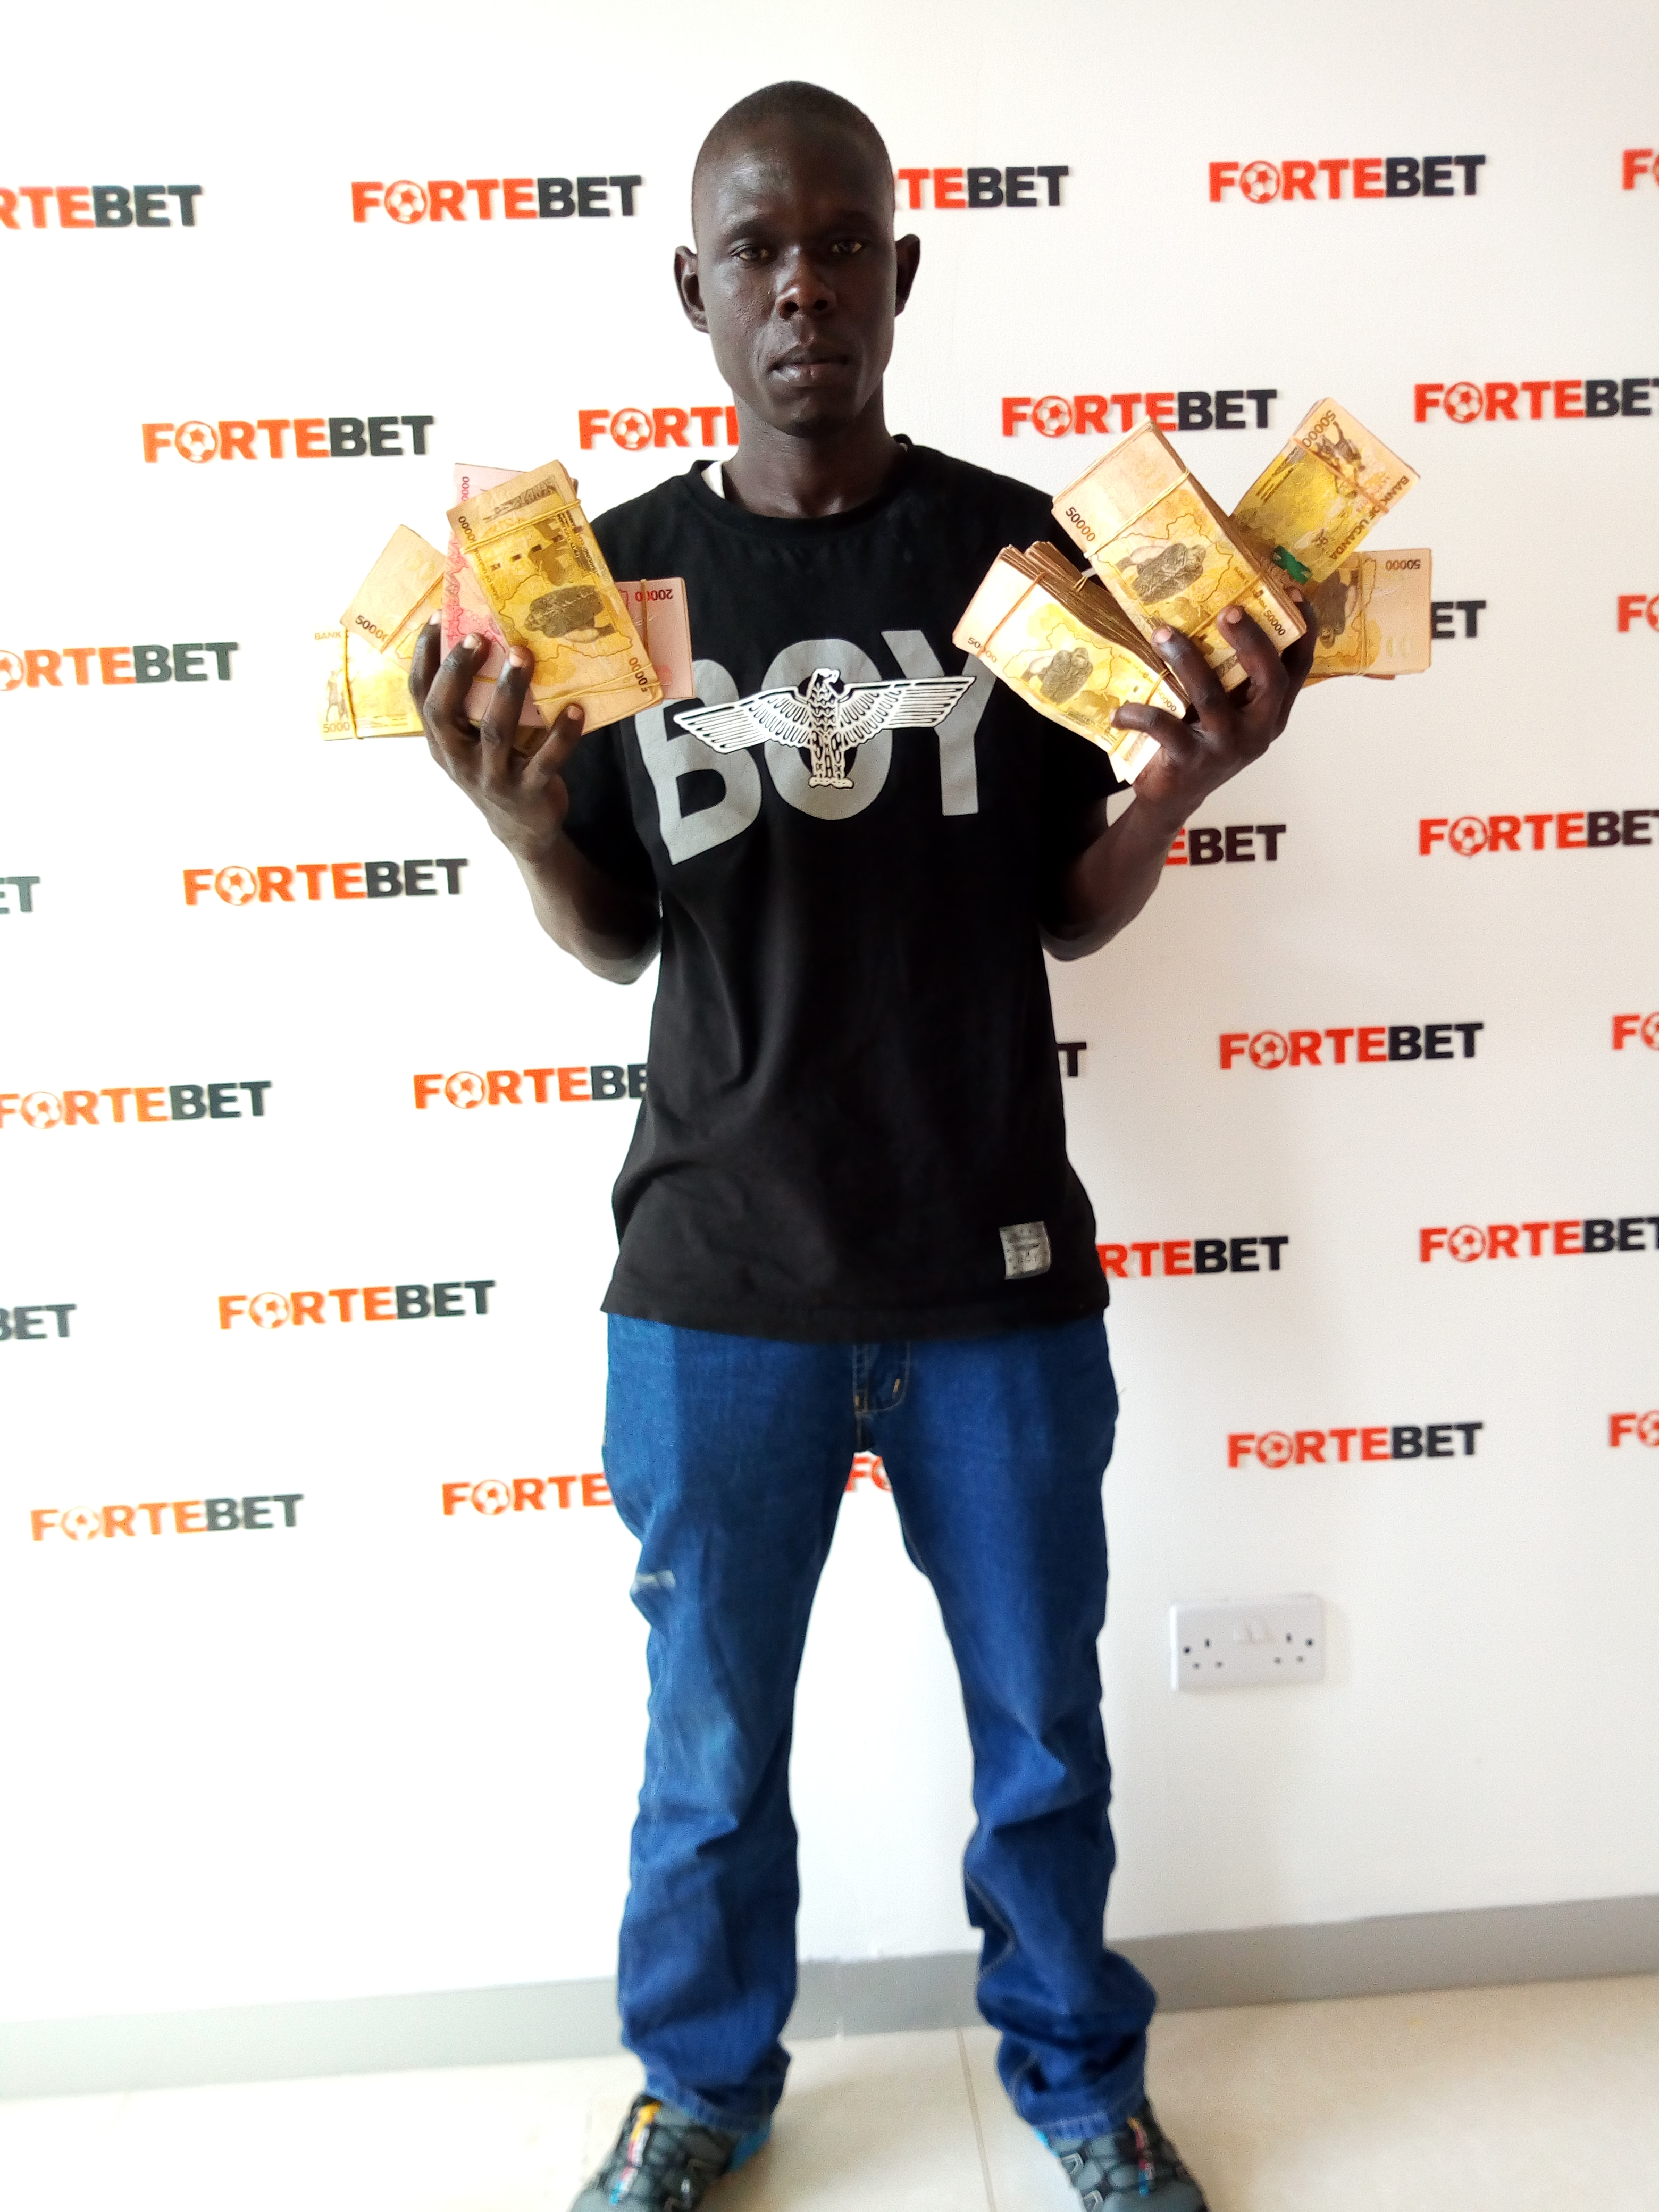 Image result for fortebet arua winner